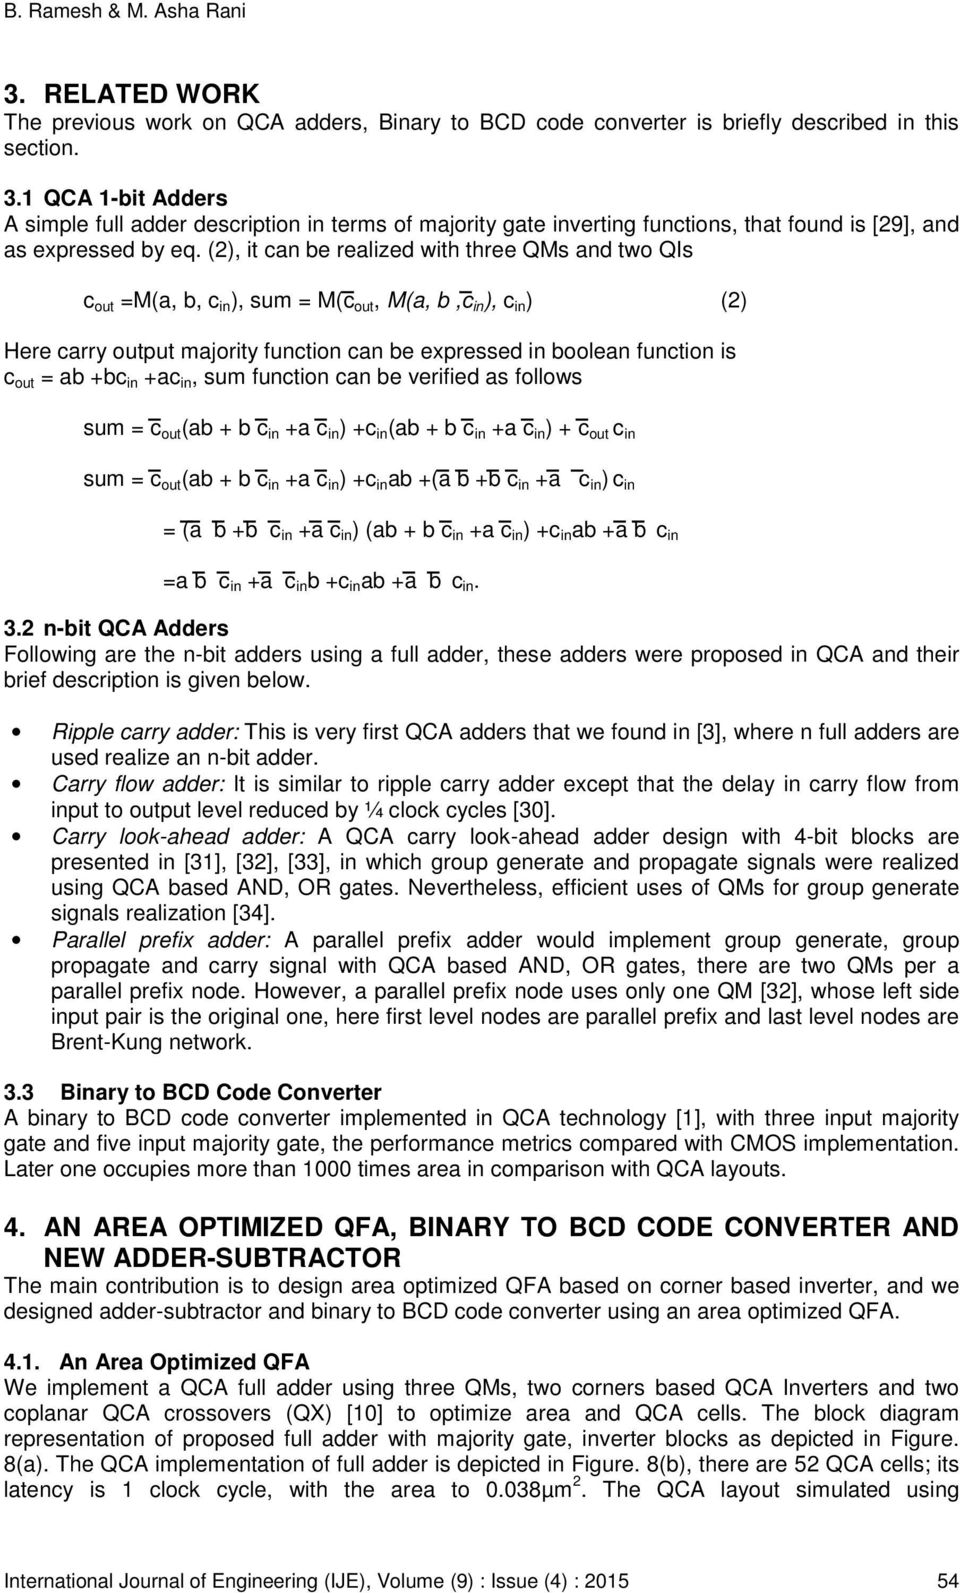 Design Of Binary To Bcd Code Converter Using Area Optimized Quantum Thus A 1bit Full Adder Can Be Realized By The Following Circuit 2 It With Three Qms And Two Qis C Out